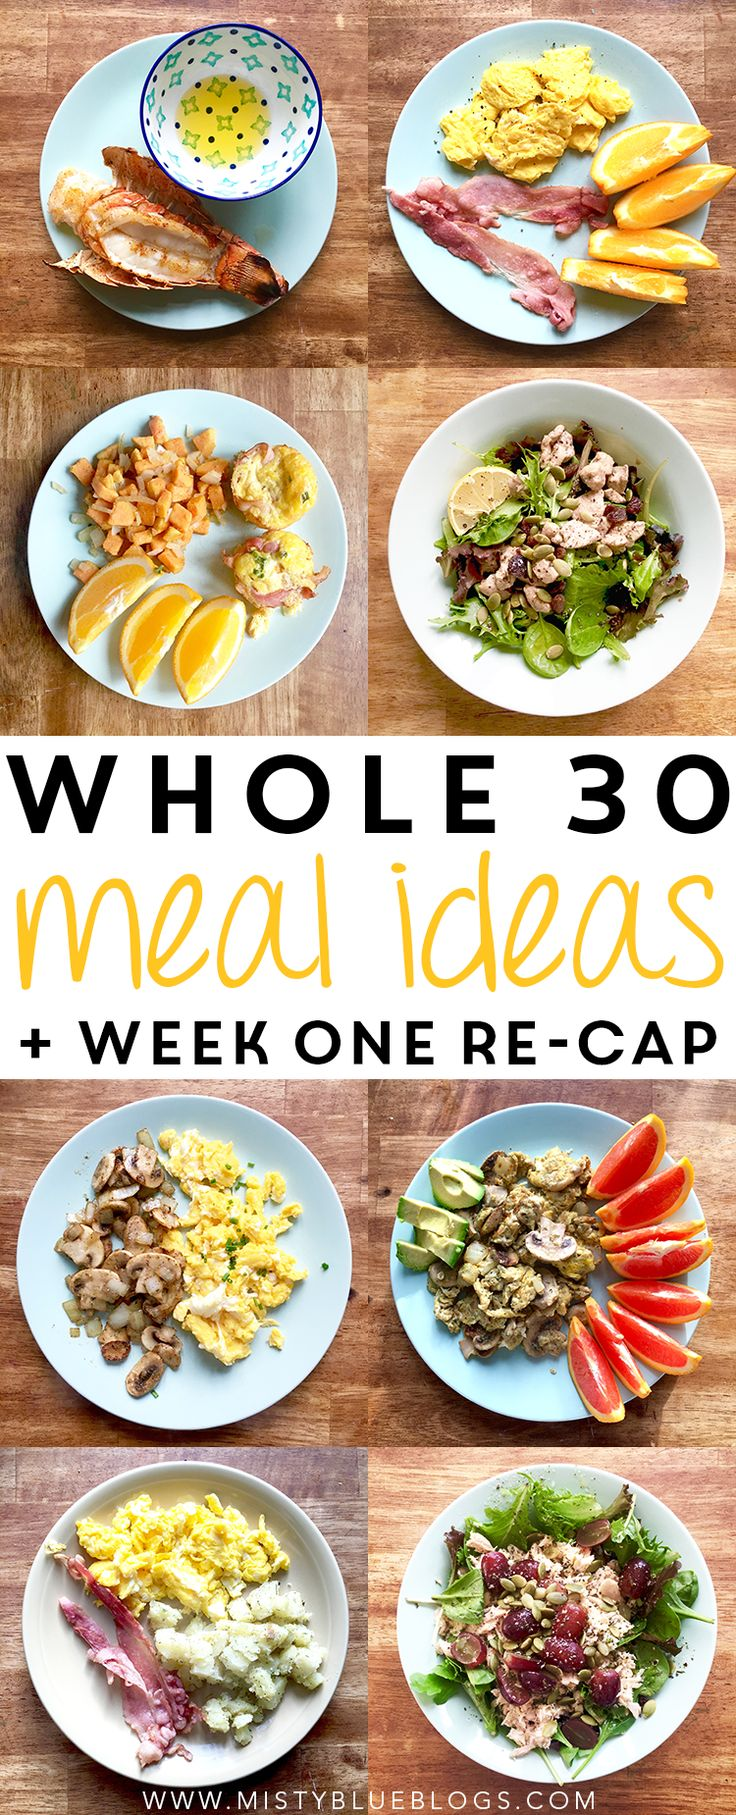 On January 8th I started my very first Whole 30 challenge! My friend Meg started it on the first with her husband and inspired the rest of our little tribe of friends' to join in. So now a few of us are either doing the whole 30 challenge, or just eating better in general. If you …